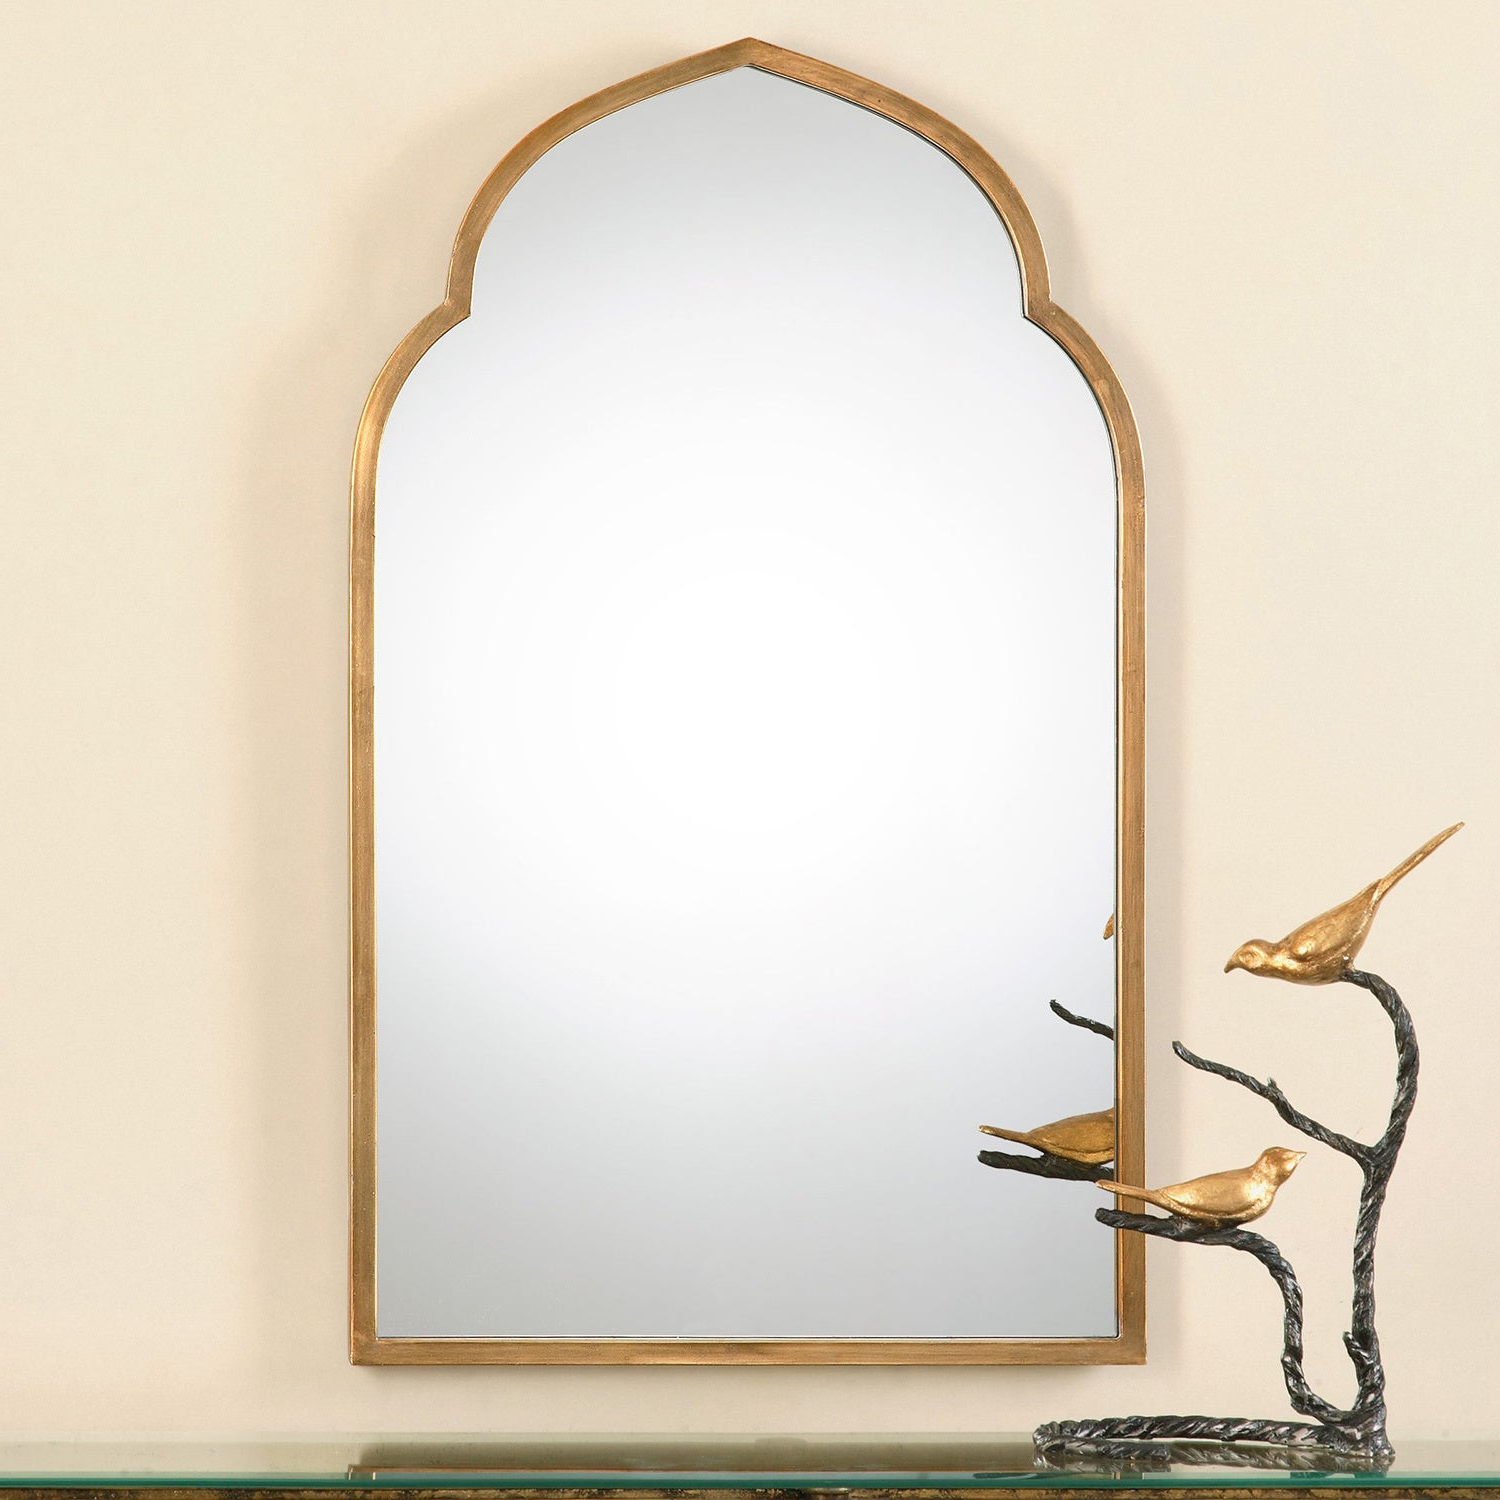 Details About Uttermost Kenitra Gold Arch Decorative Wall Mirror – Antique  Silver – Intended For Famous Uttermost Wall Mirrors (View 3 of 20)